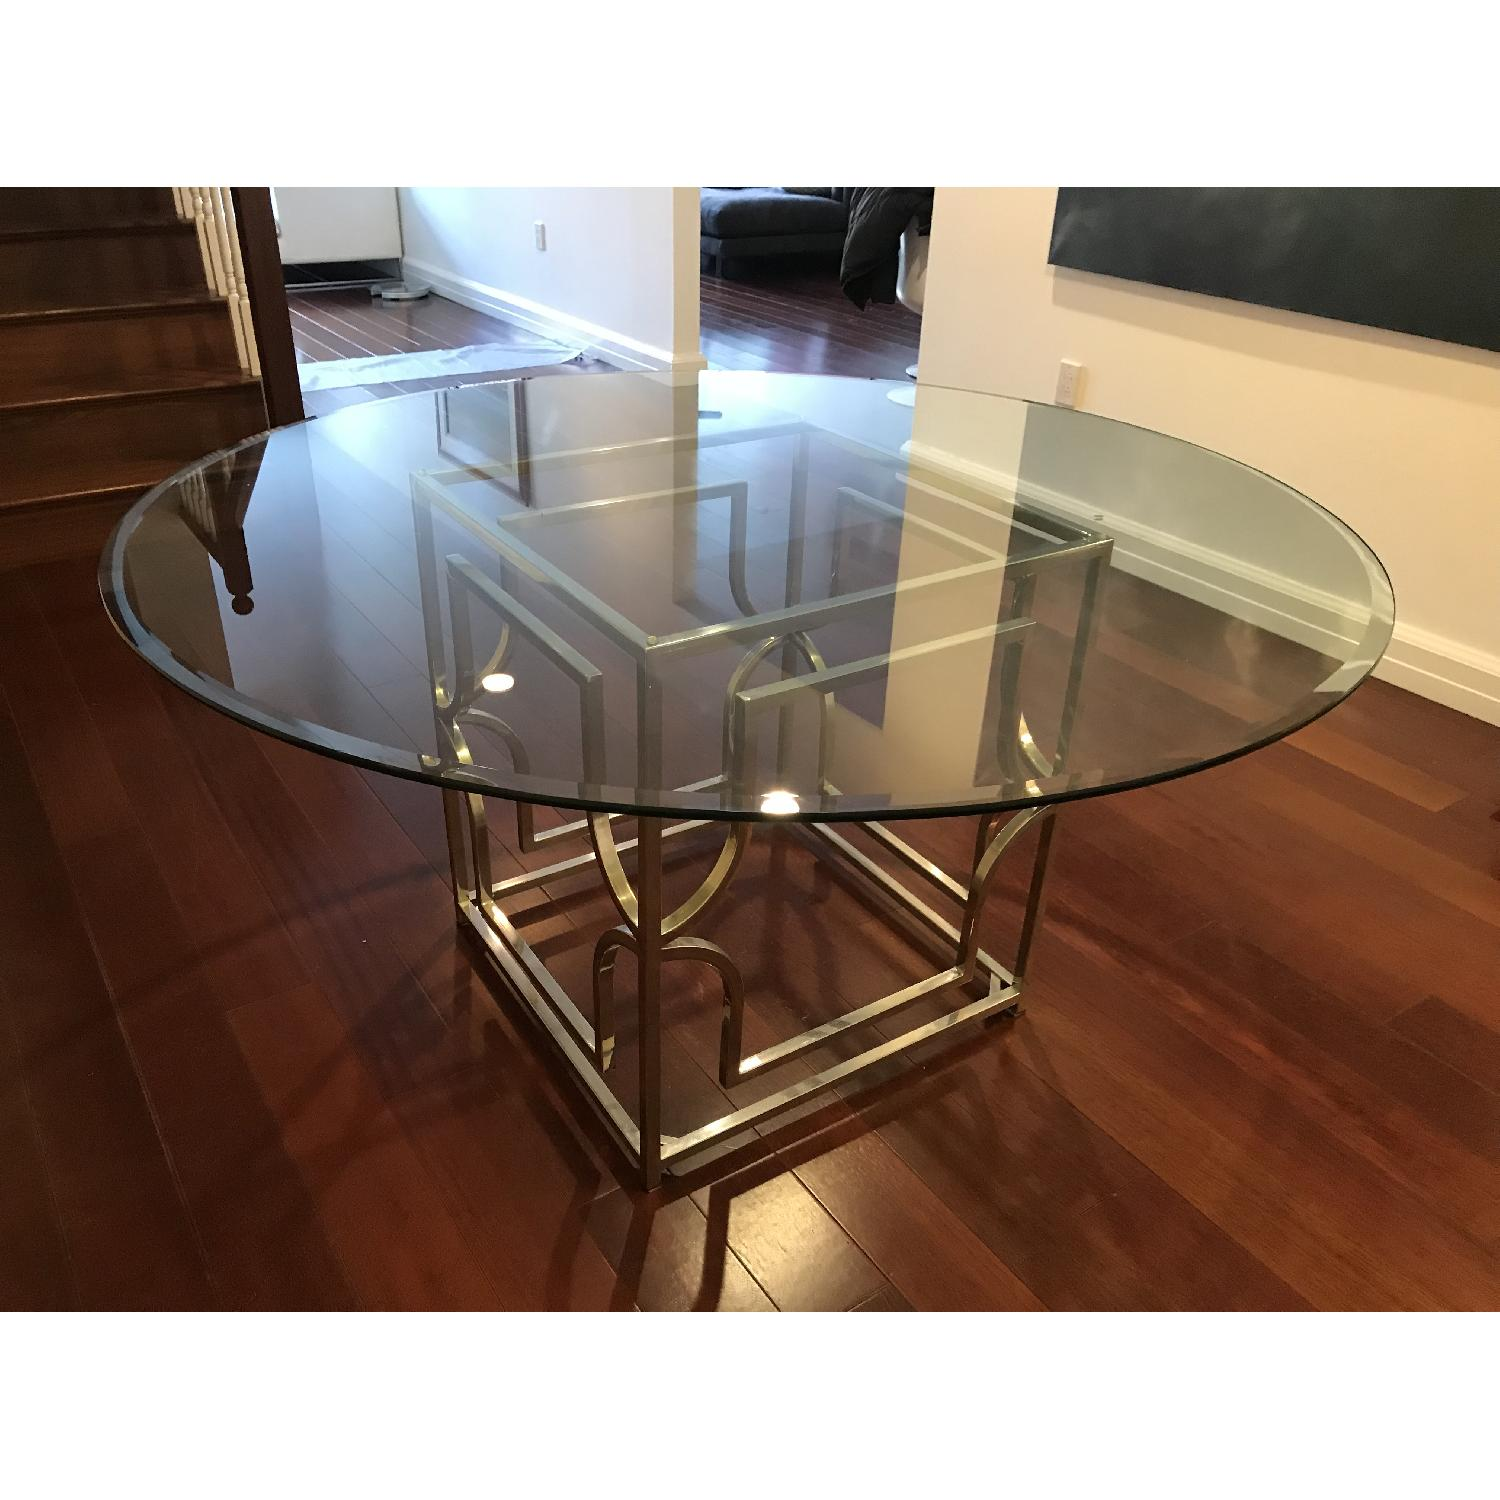 Z Gallerie Glass amp Chrome Dining Table AptDeco : 1500 1500 frame 0 from www.aptdeco.com size 1500 x 1500 jpeg 170kB